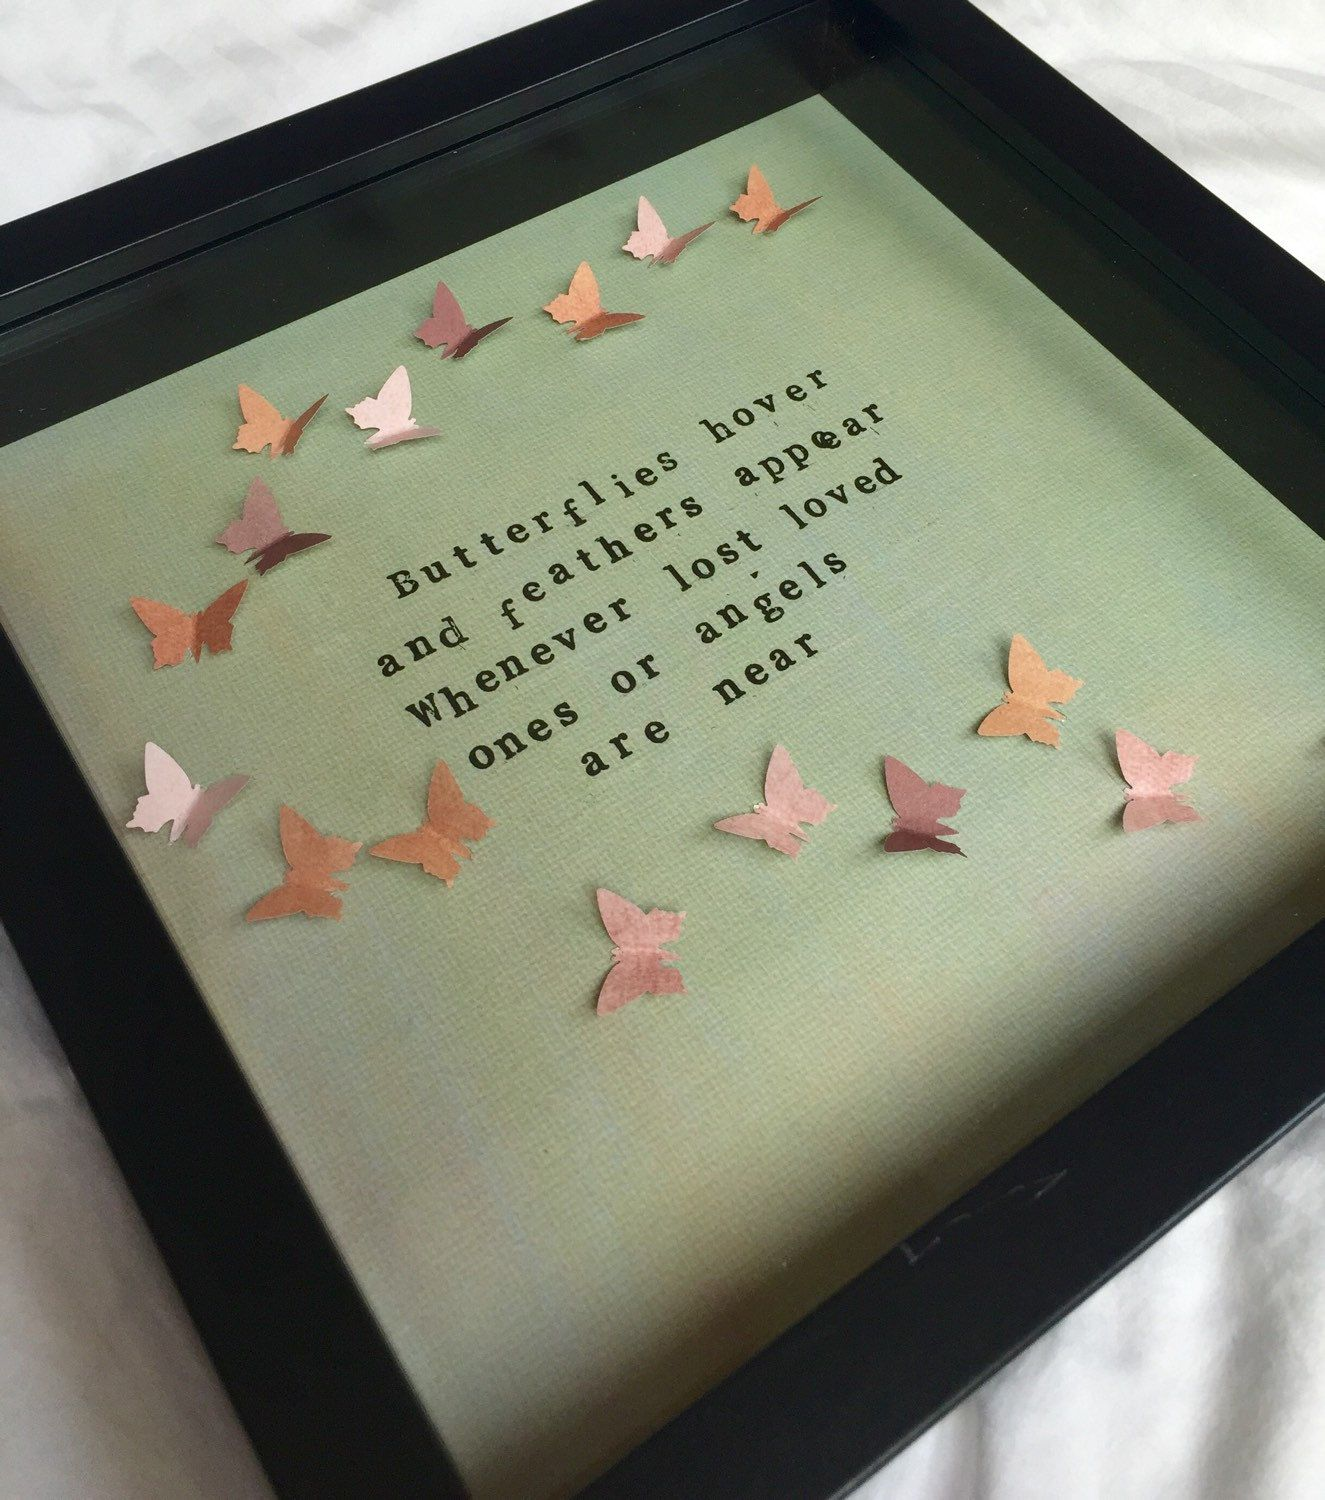 Lost Of Loved One Quotes Memorial Sympathy Gift Framelost Loved One Angelsframe